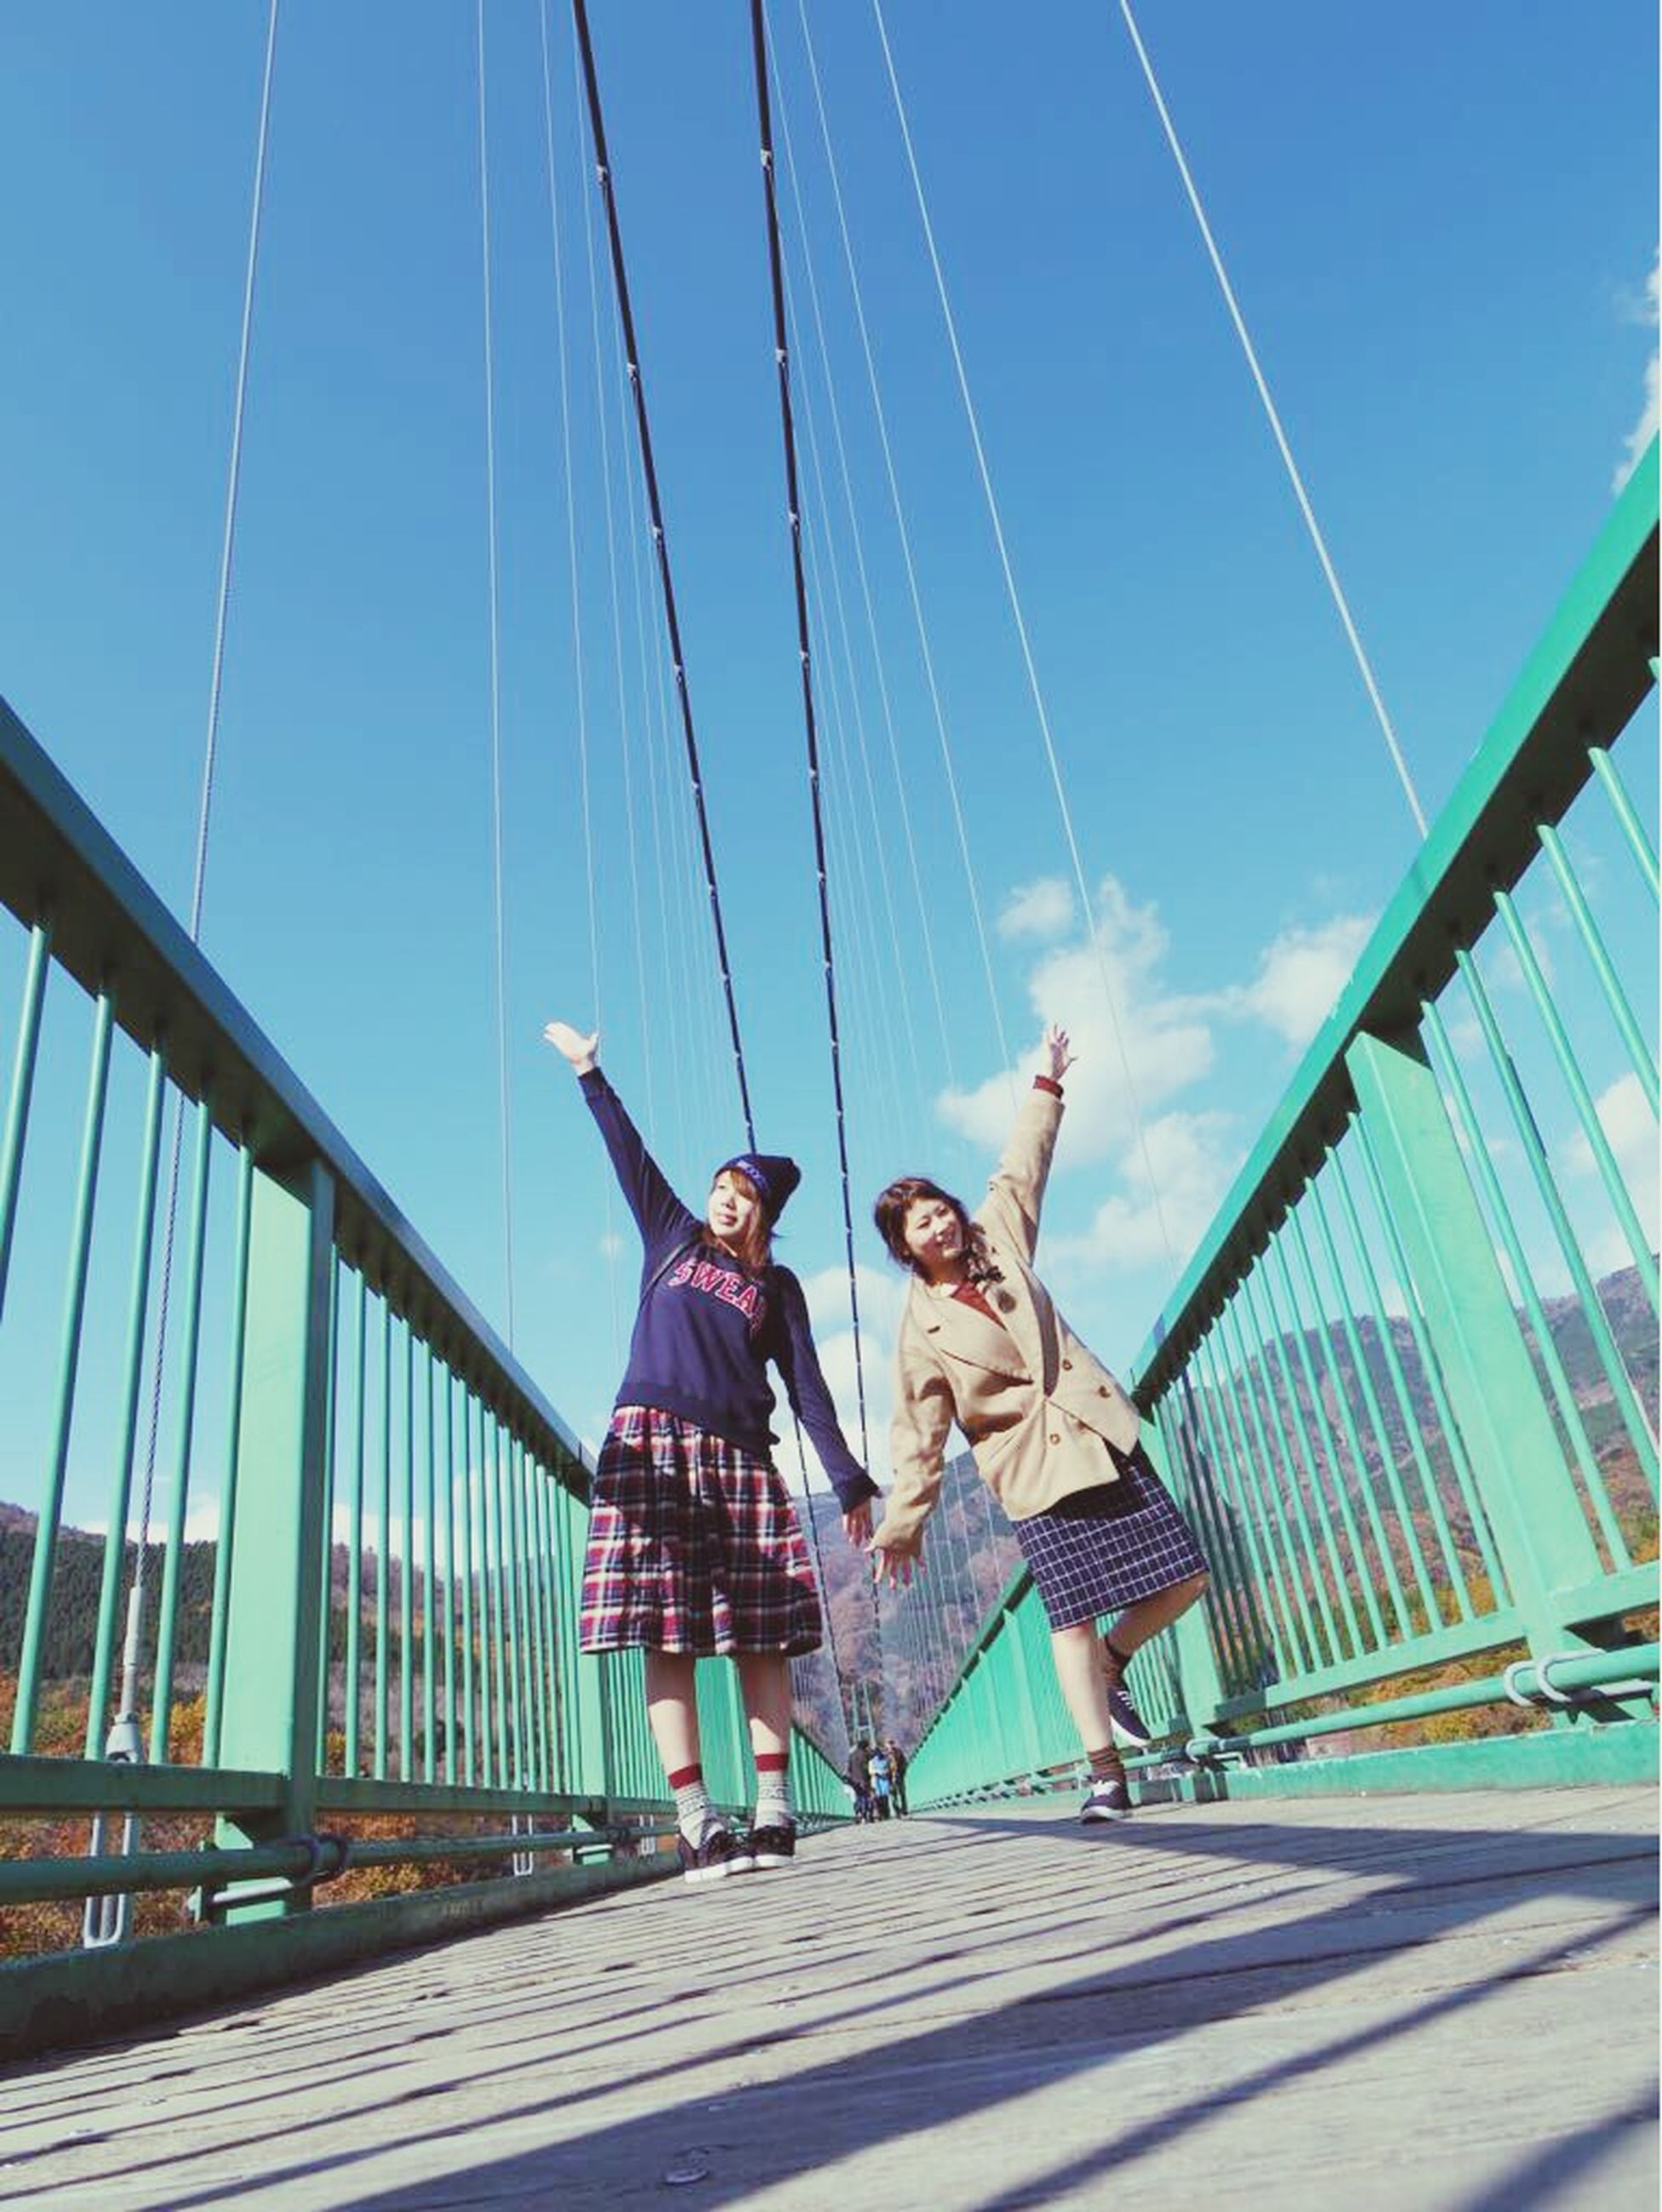 lifestyles, leisure activity, full length, casual clothing, fun, person, enjoyment, young adult, young women, happiness, togetherness, sky, girls, boys, childhood, low angle view, playing